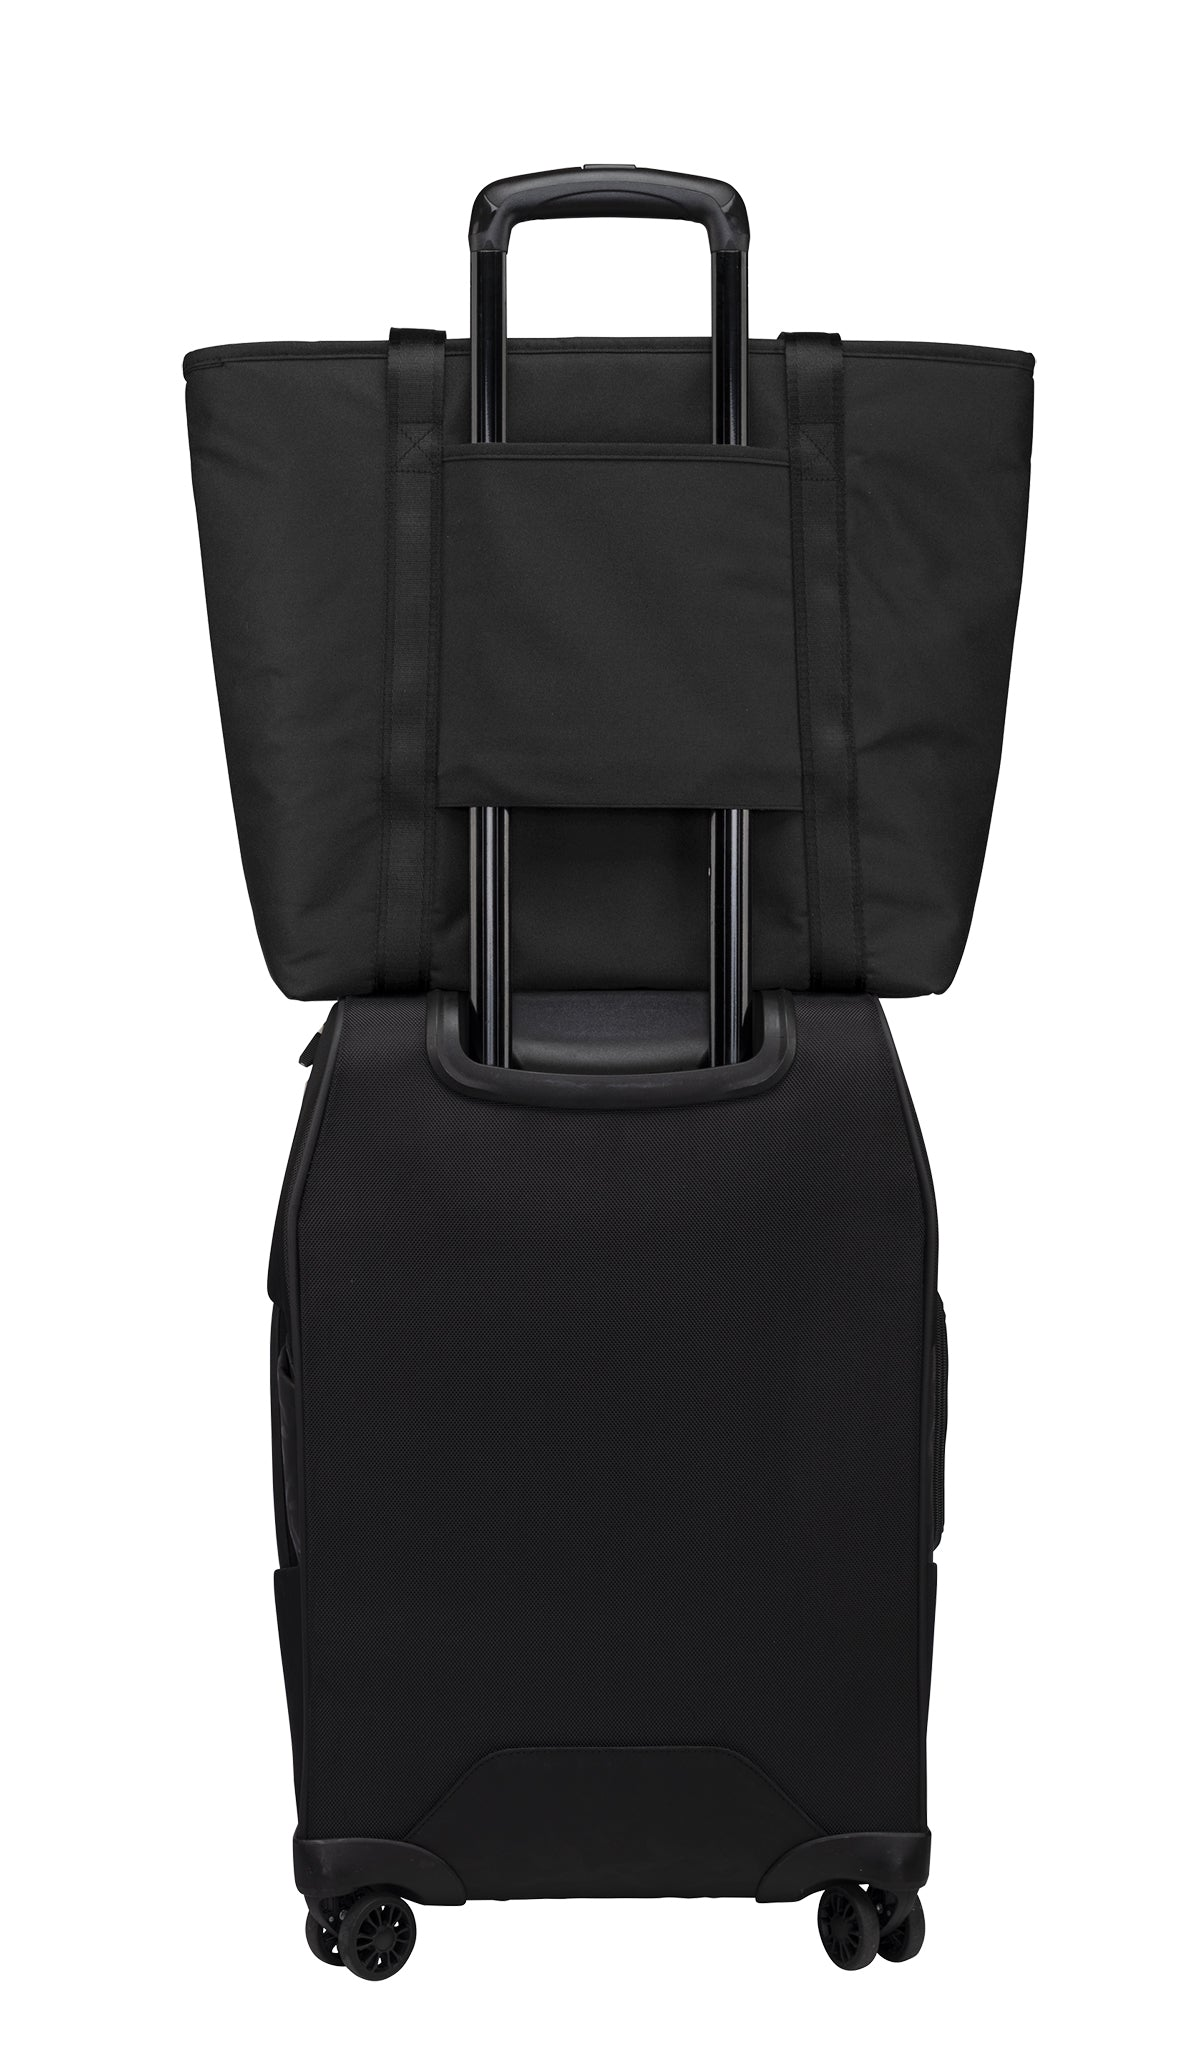 back of OGIO tote with pocket for luggage handle